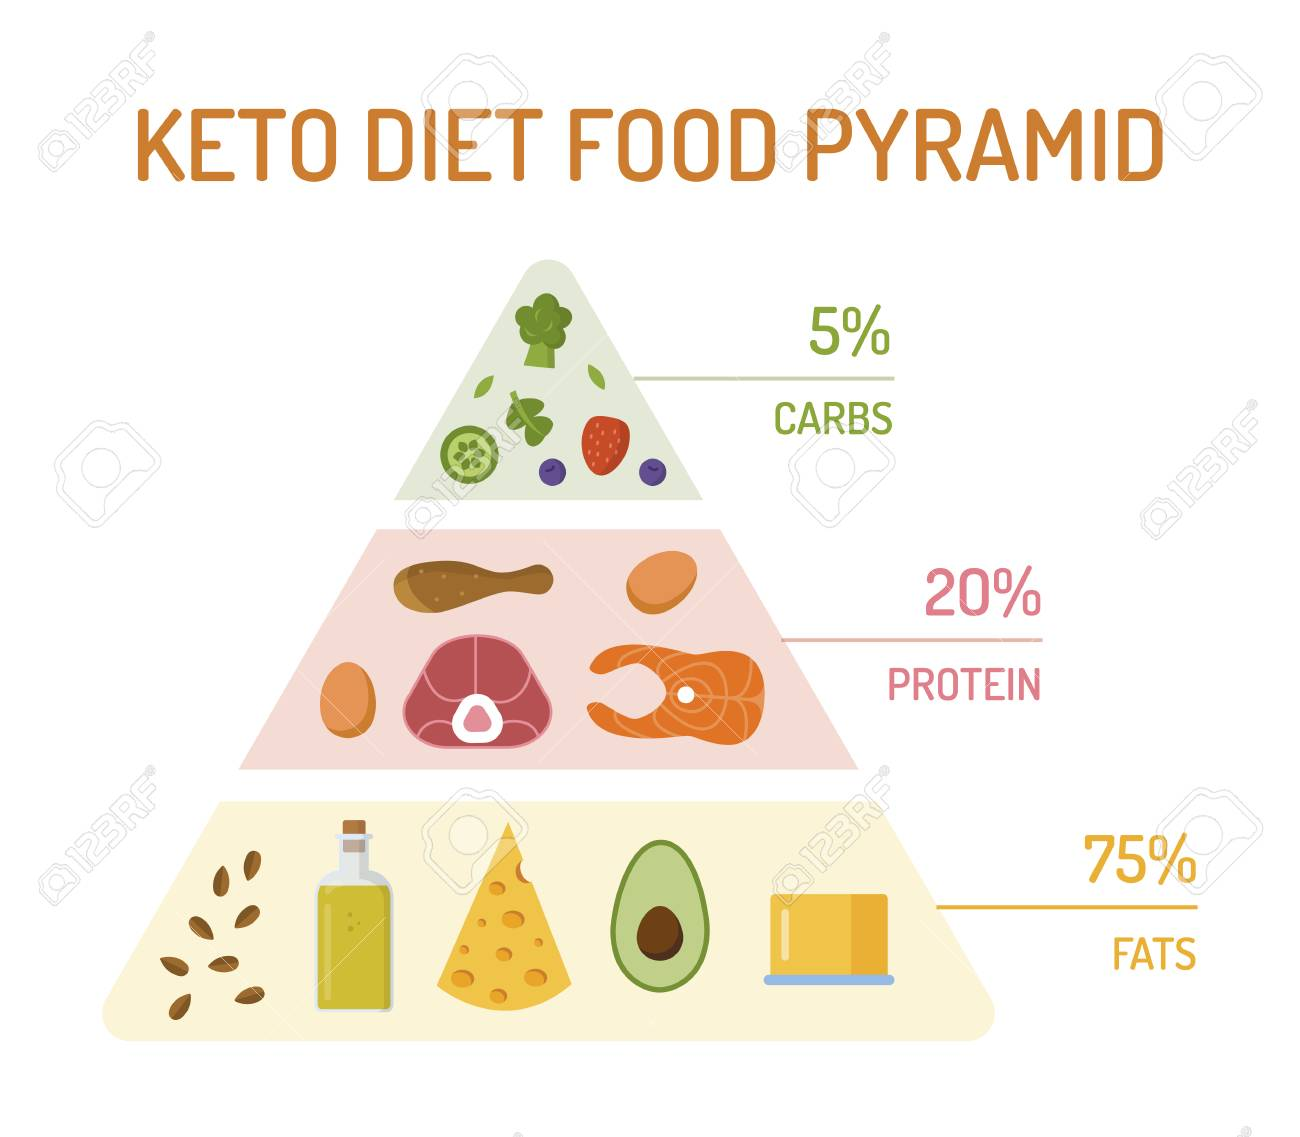 Keto diet food pyramid. The percentage of fats, proteins and carbs. Flat design. Vector illustration. - 125310974